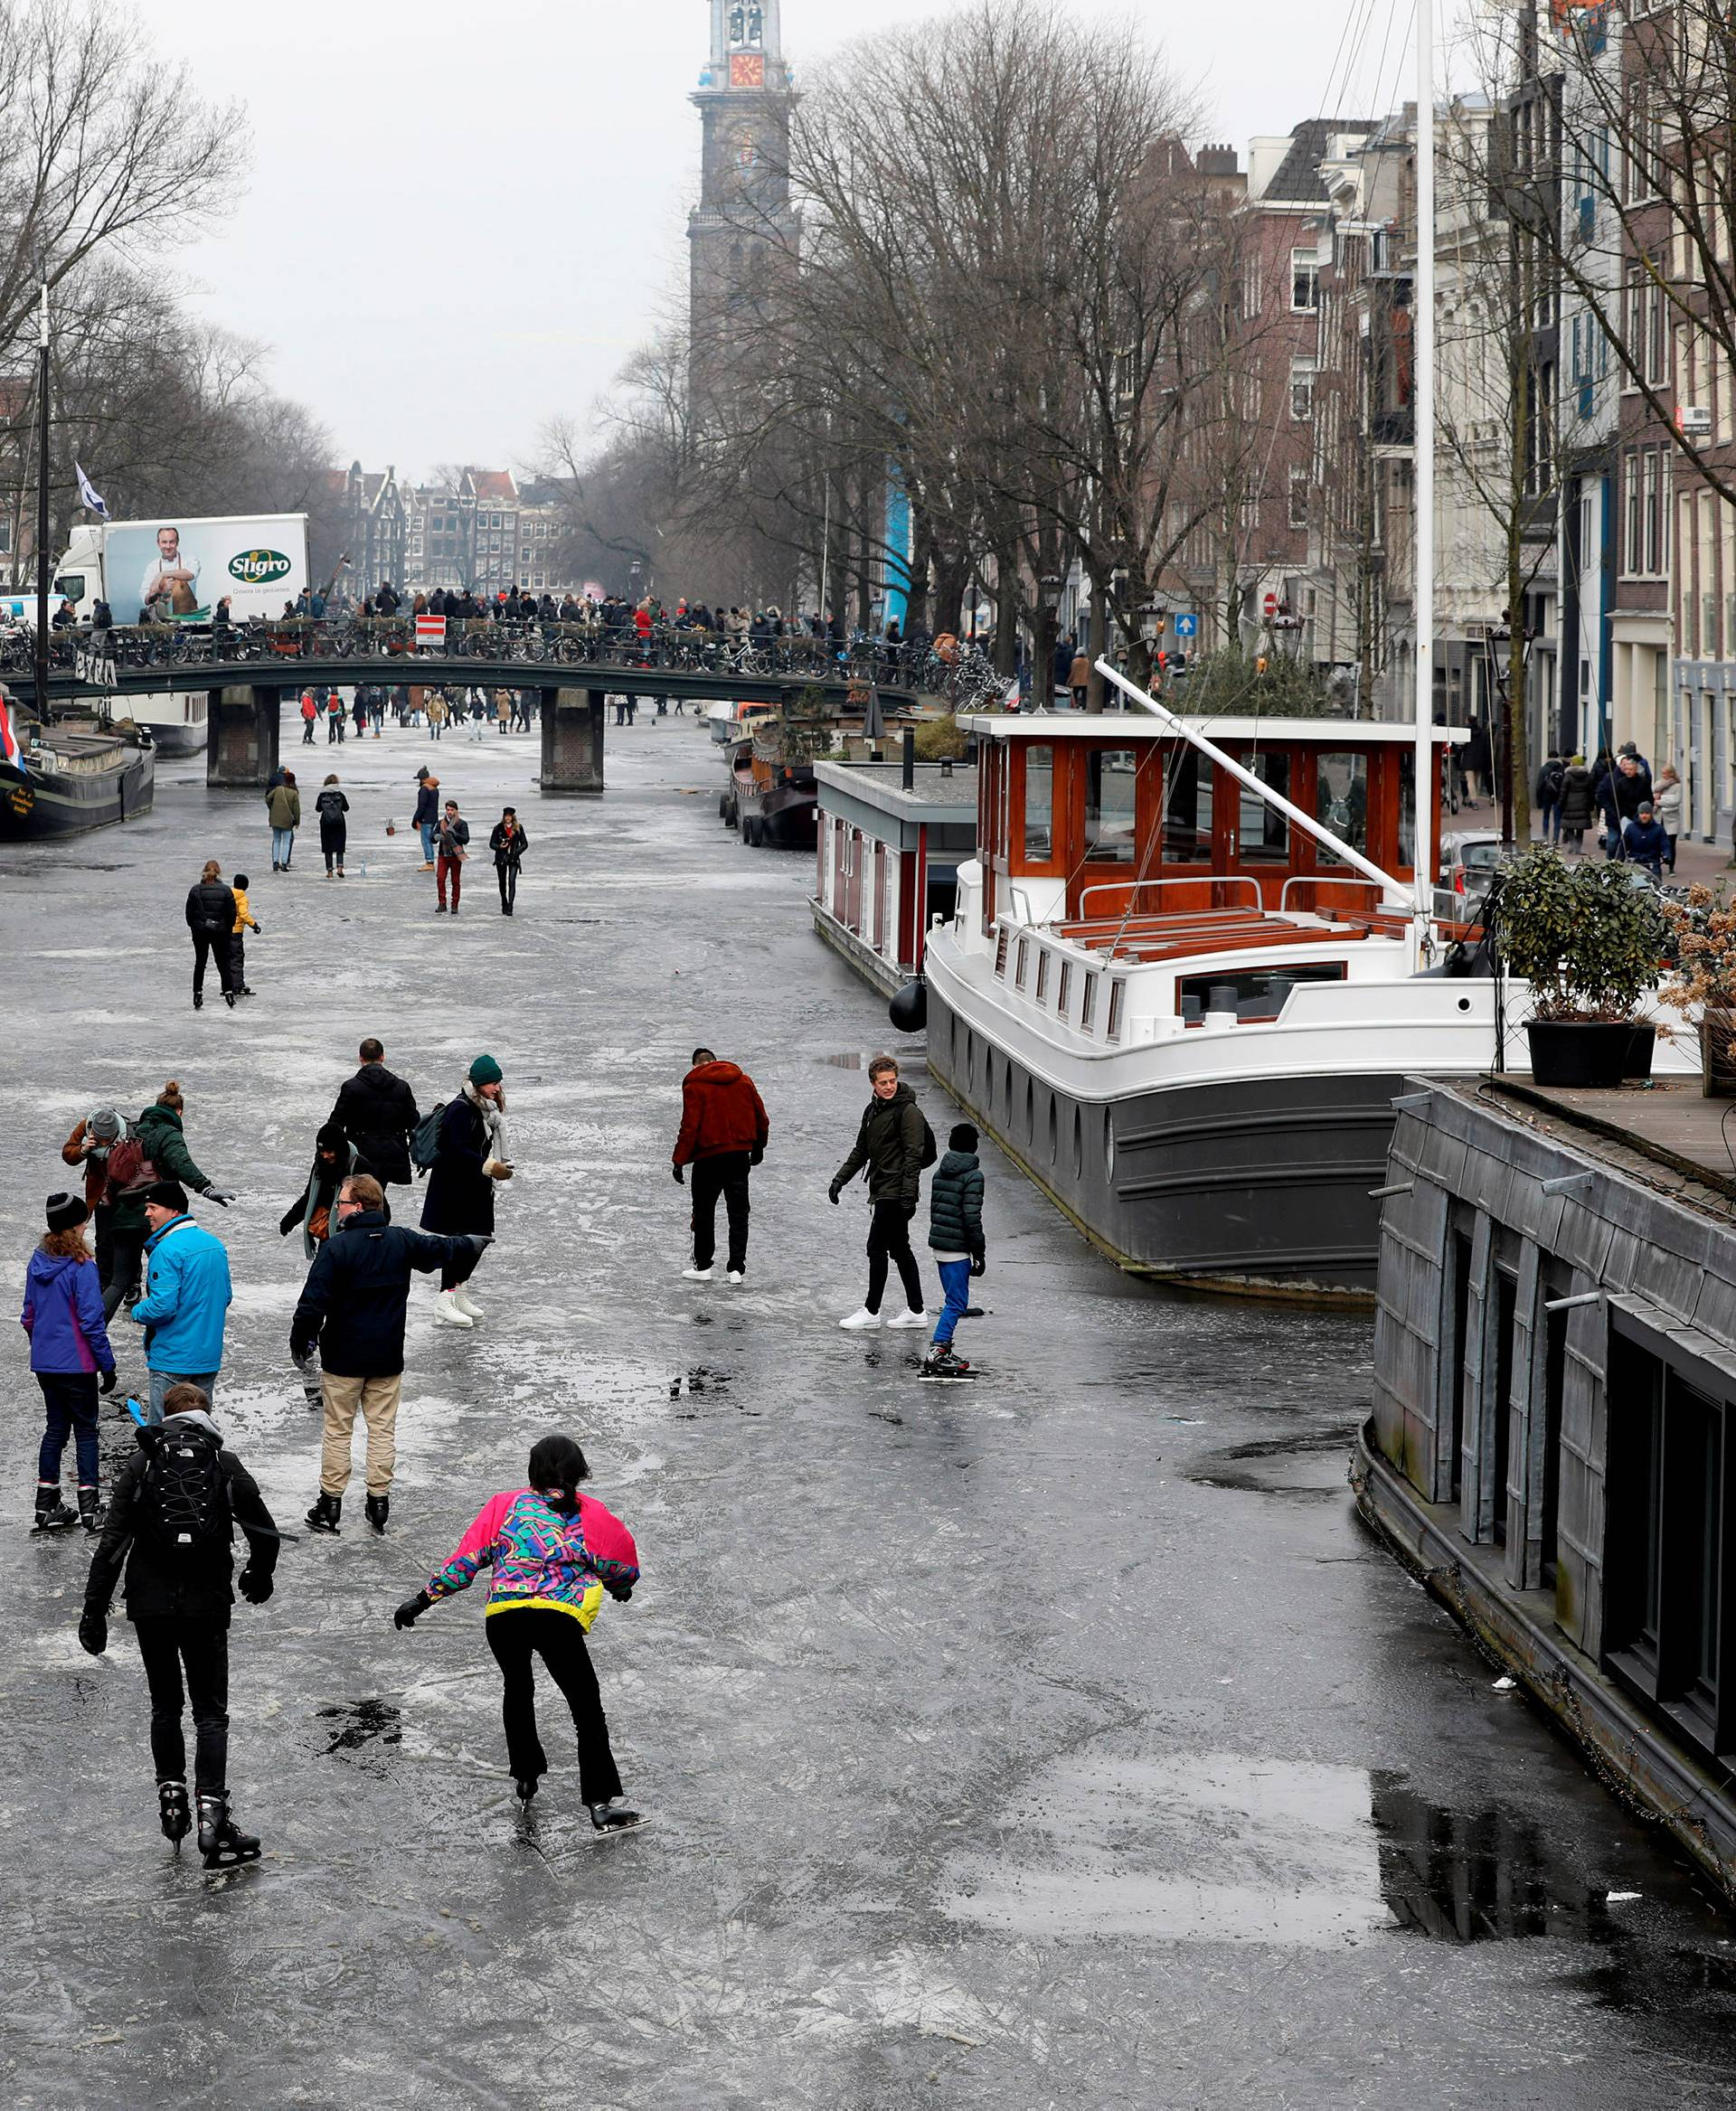 Ice skaters skate on the frozen Prinsengracht canal during icy weather in Amsterdam